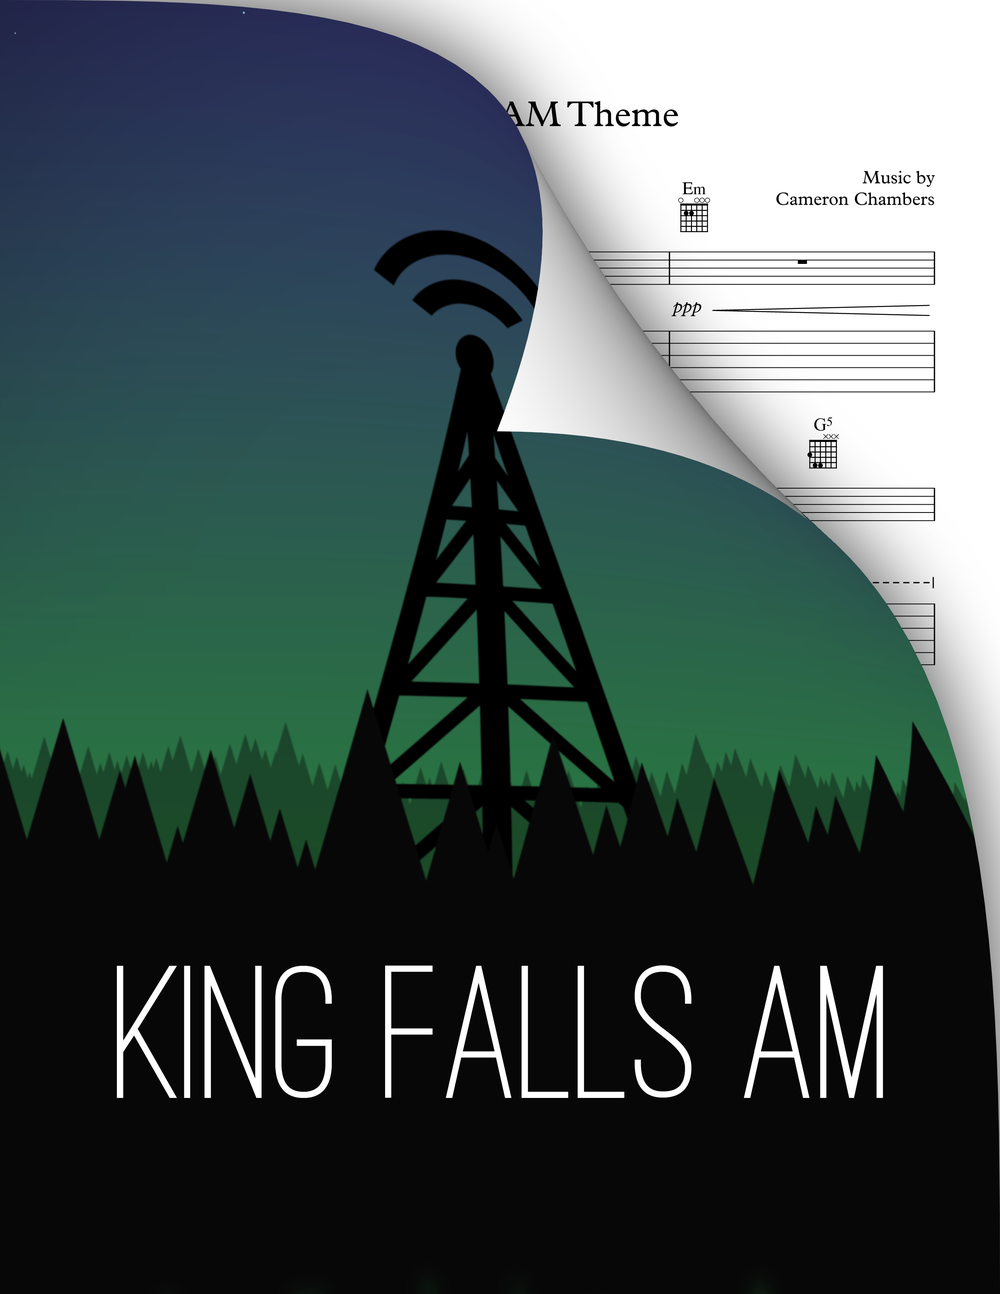 KingFallsAMThemeSheetMusic.png